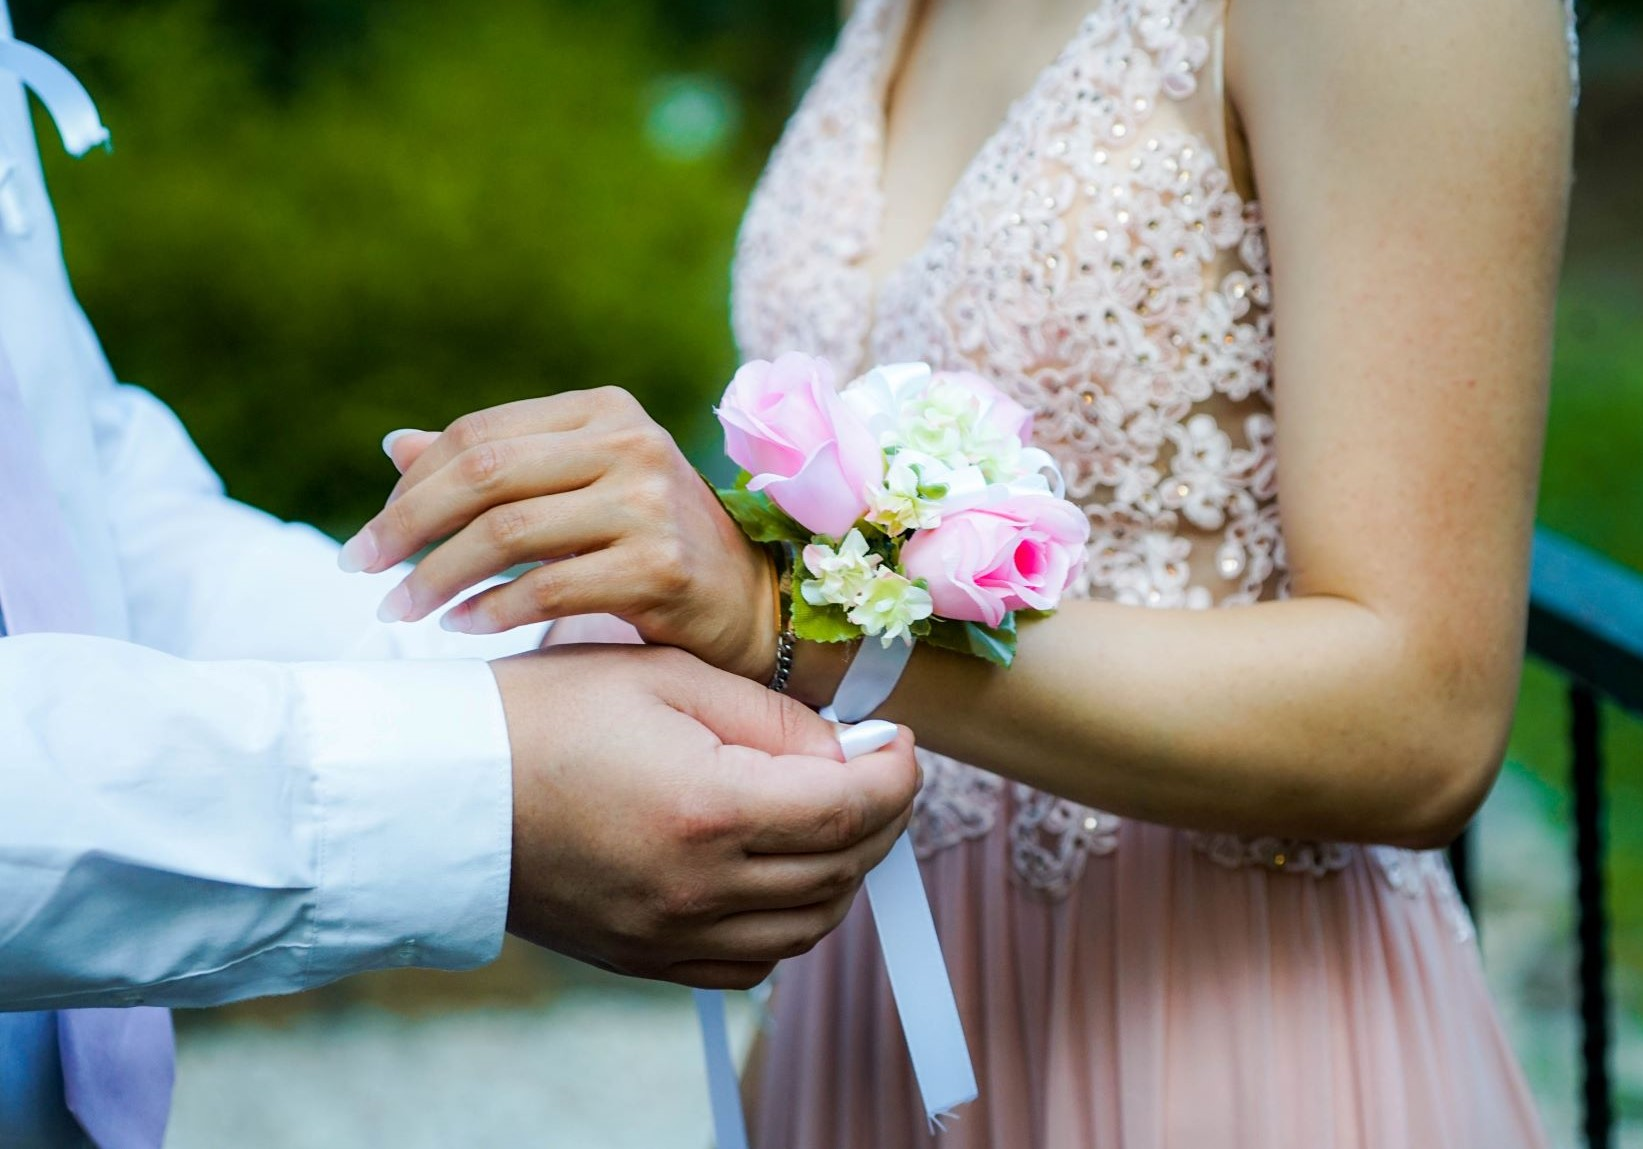 Best Promposal Ideas - Corsage